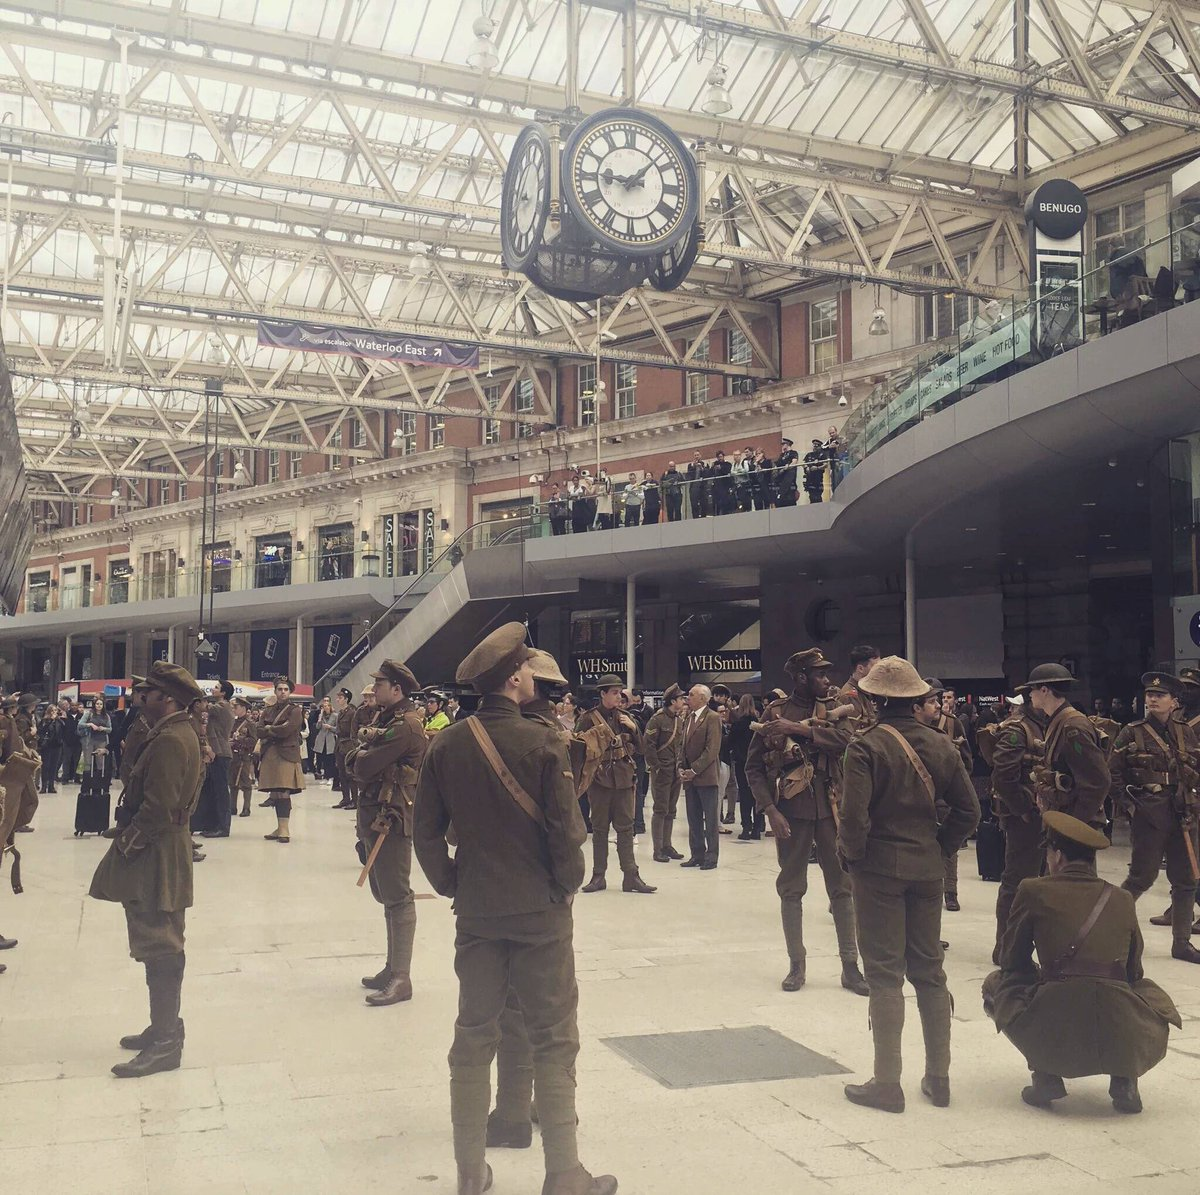 Waterloo station this morning on the 100th anniversary of the Somme: https://t.co/mxOtZ2uio9 https://t.co/p2bV7TCDkg